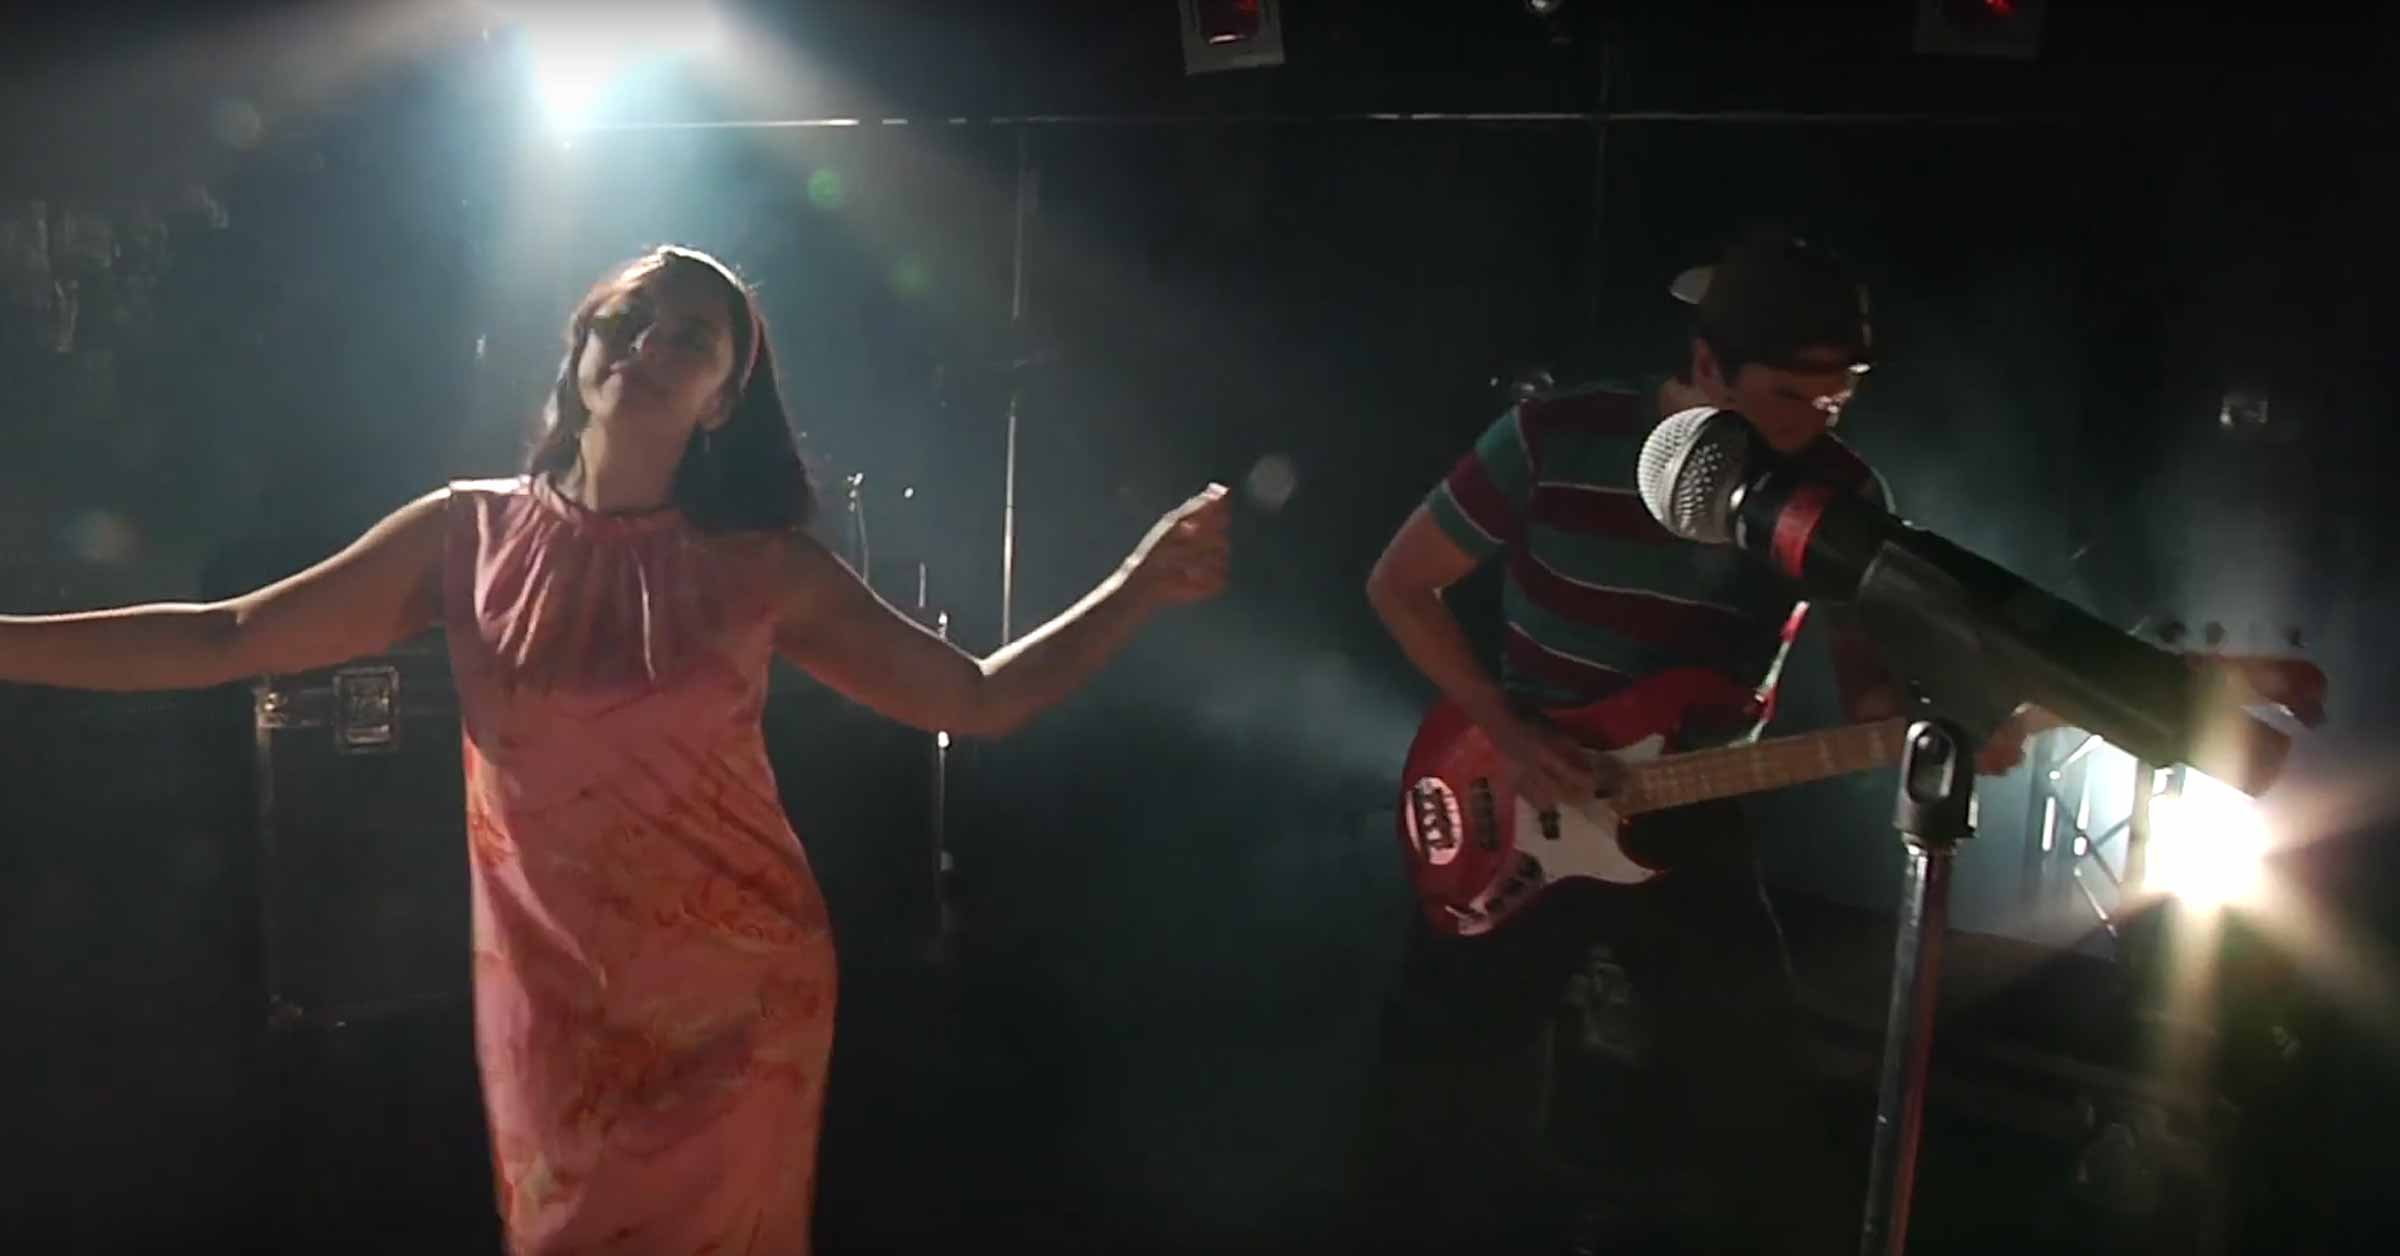 Aja Wiltshire dancing next to Greg Watanabe, who is playing the guitar